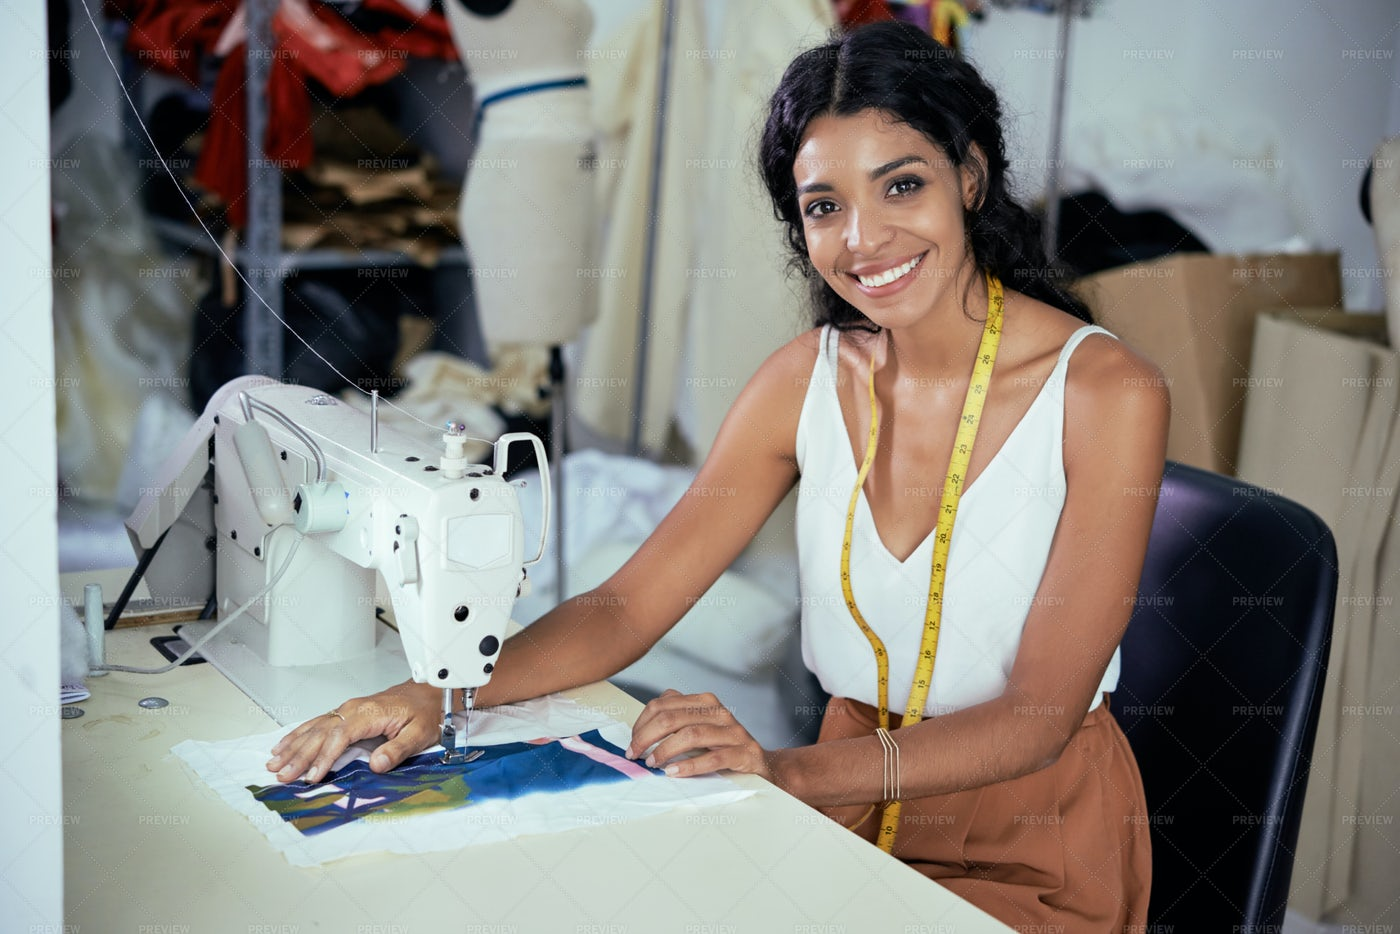 Seamstress Working On Sewing Machine: Stock Photos